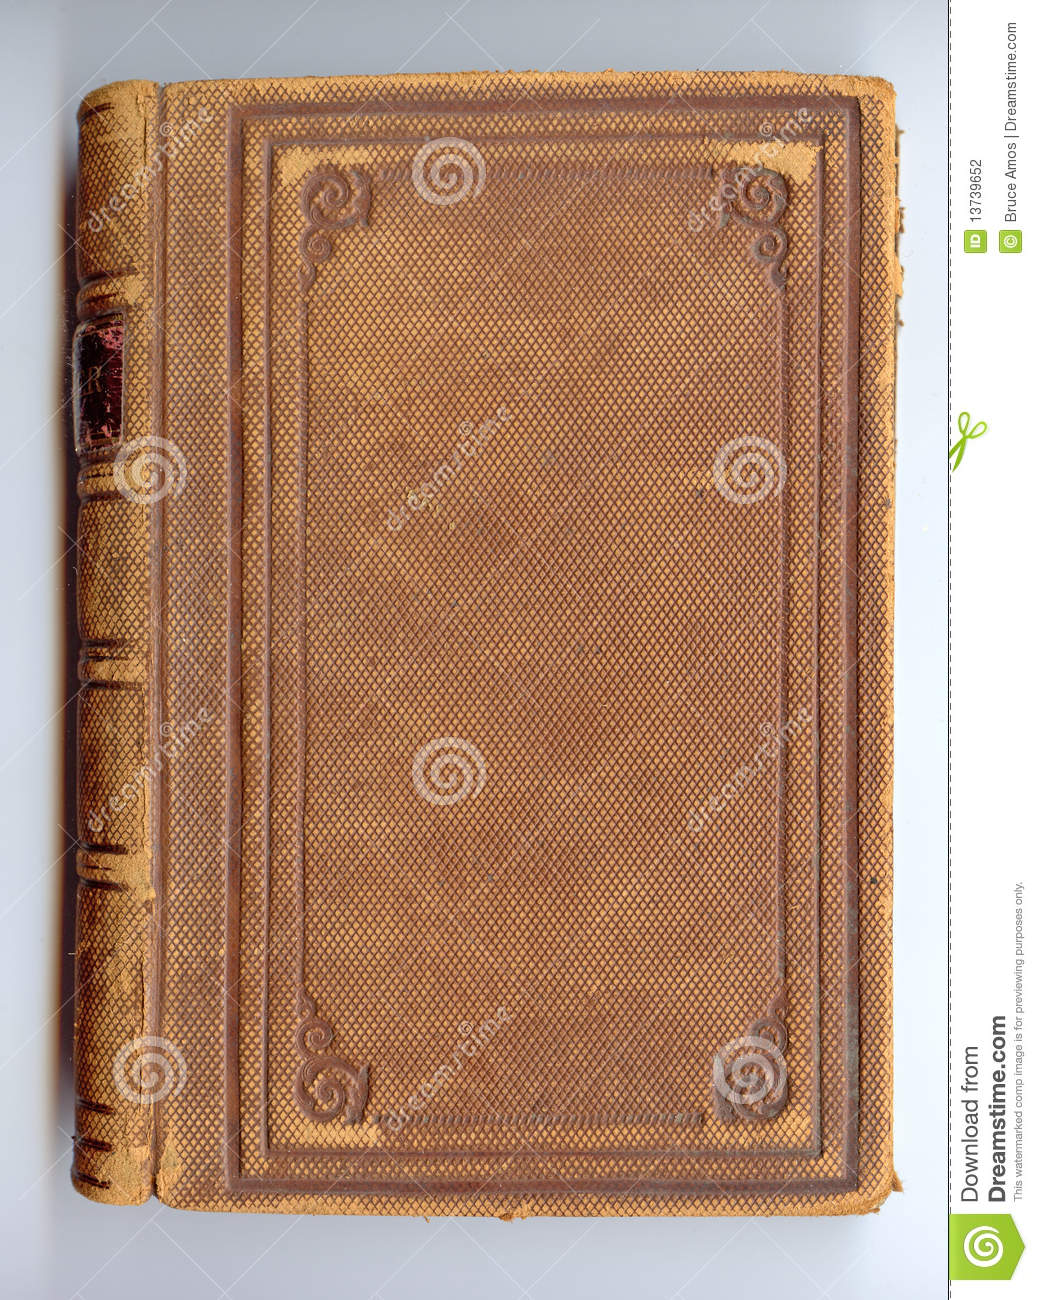 Vintage Leather Book Cover : Antique leather book cover stock photo image of study